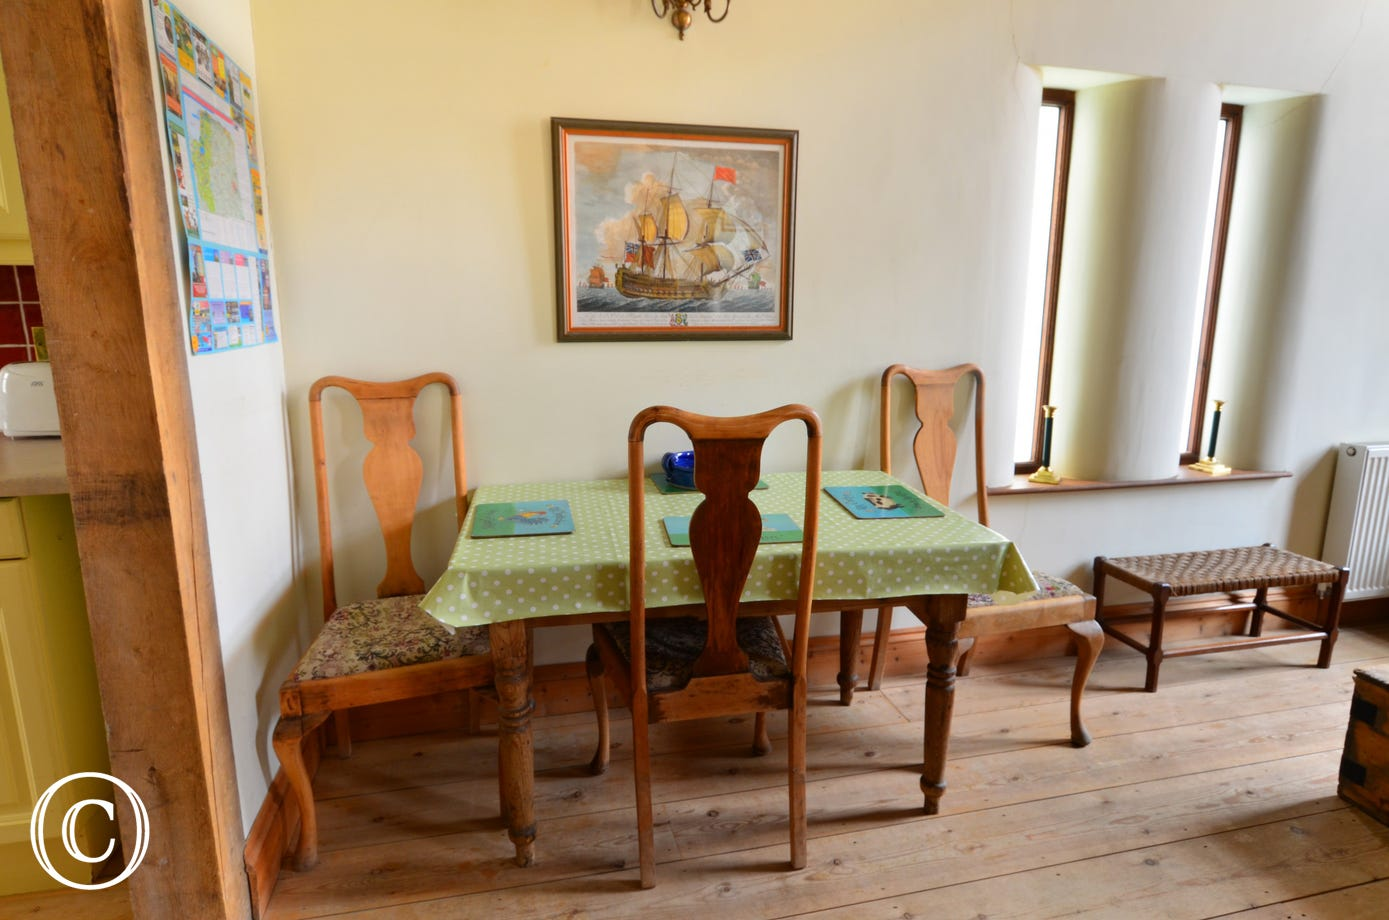 A dining table and chairs in one corner of the sitting room, perfect for family meals